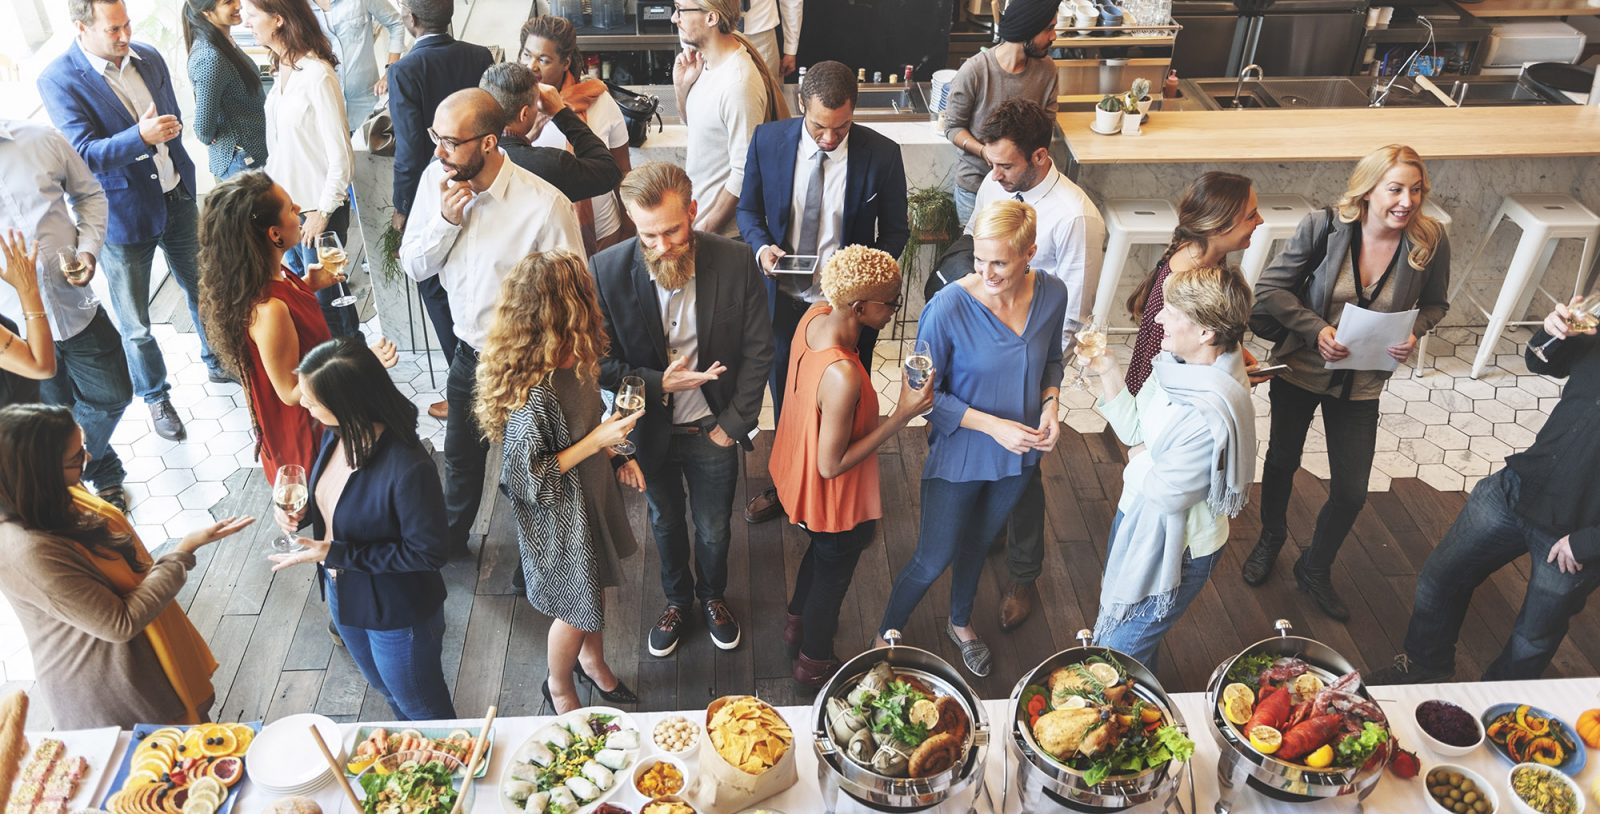 Annual customer user group events